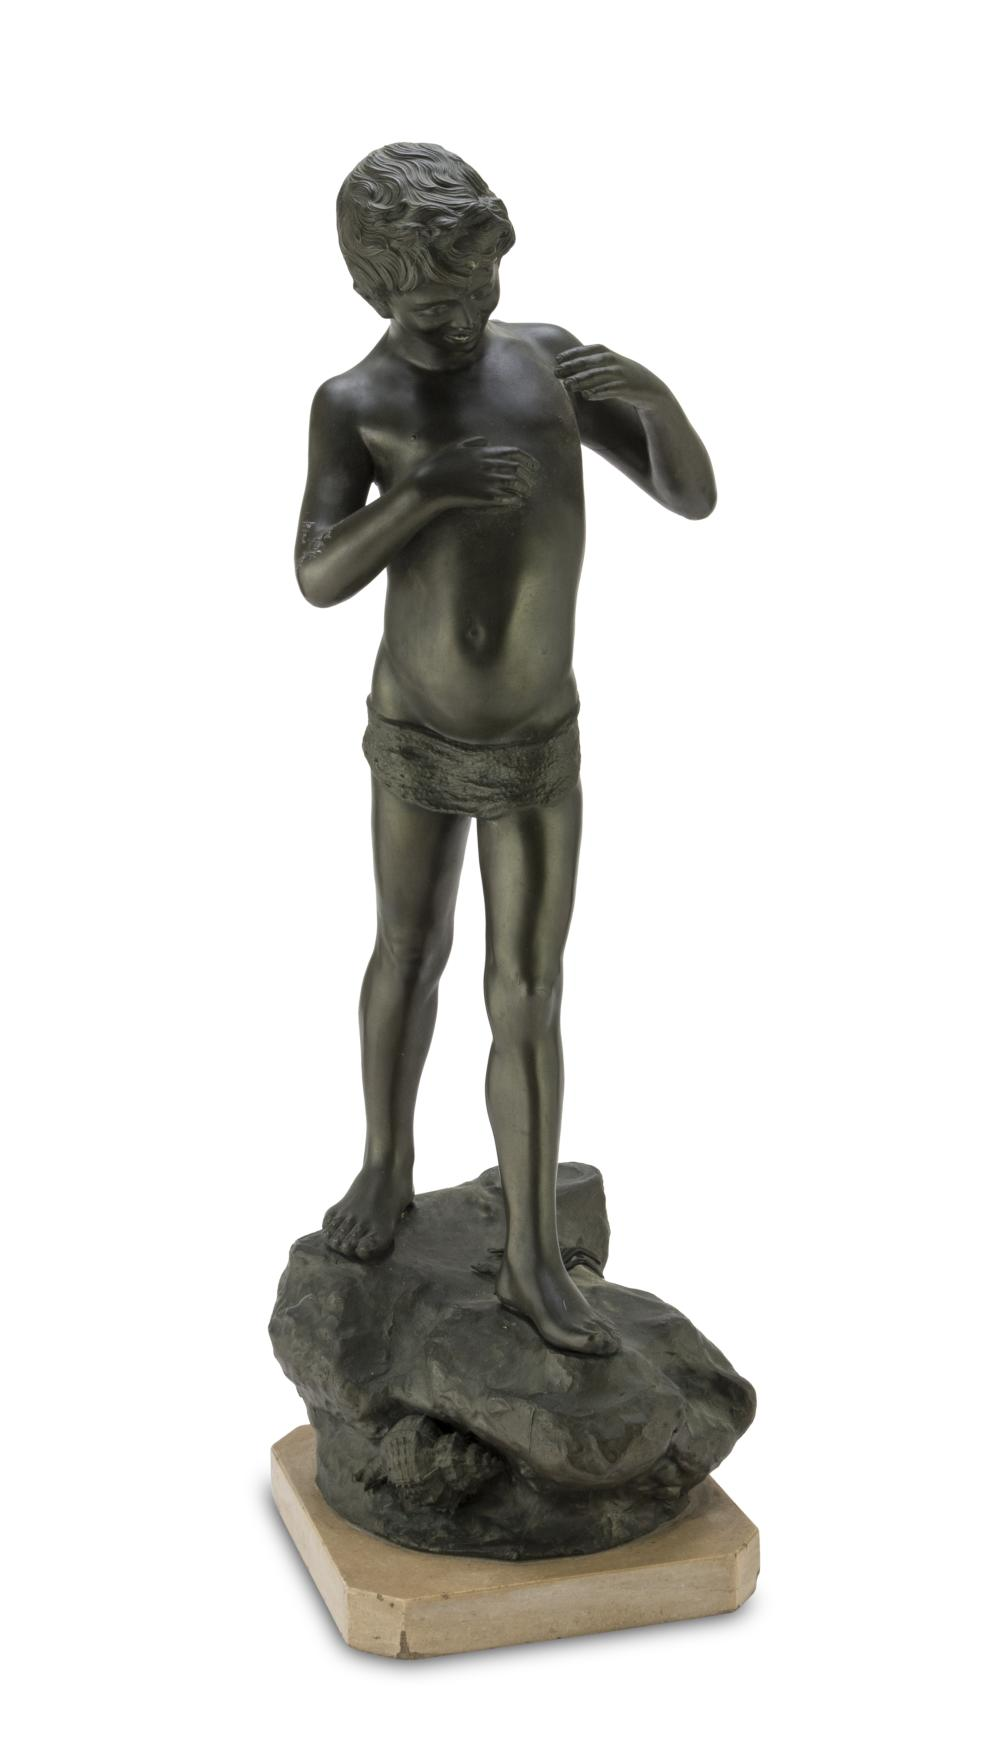 NEAPOLITAN SCULPTOR, EARLY 20TH CENTURY